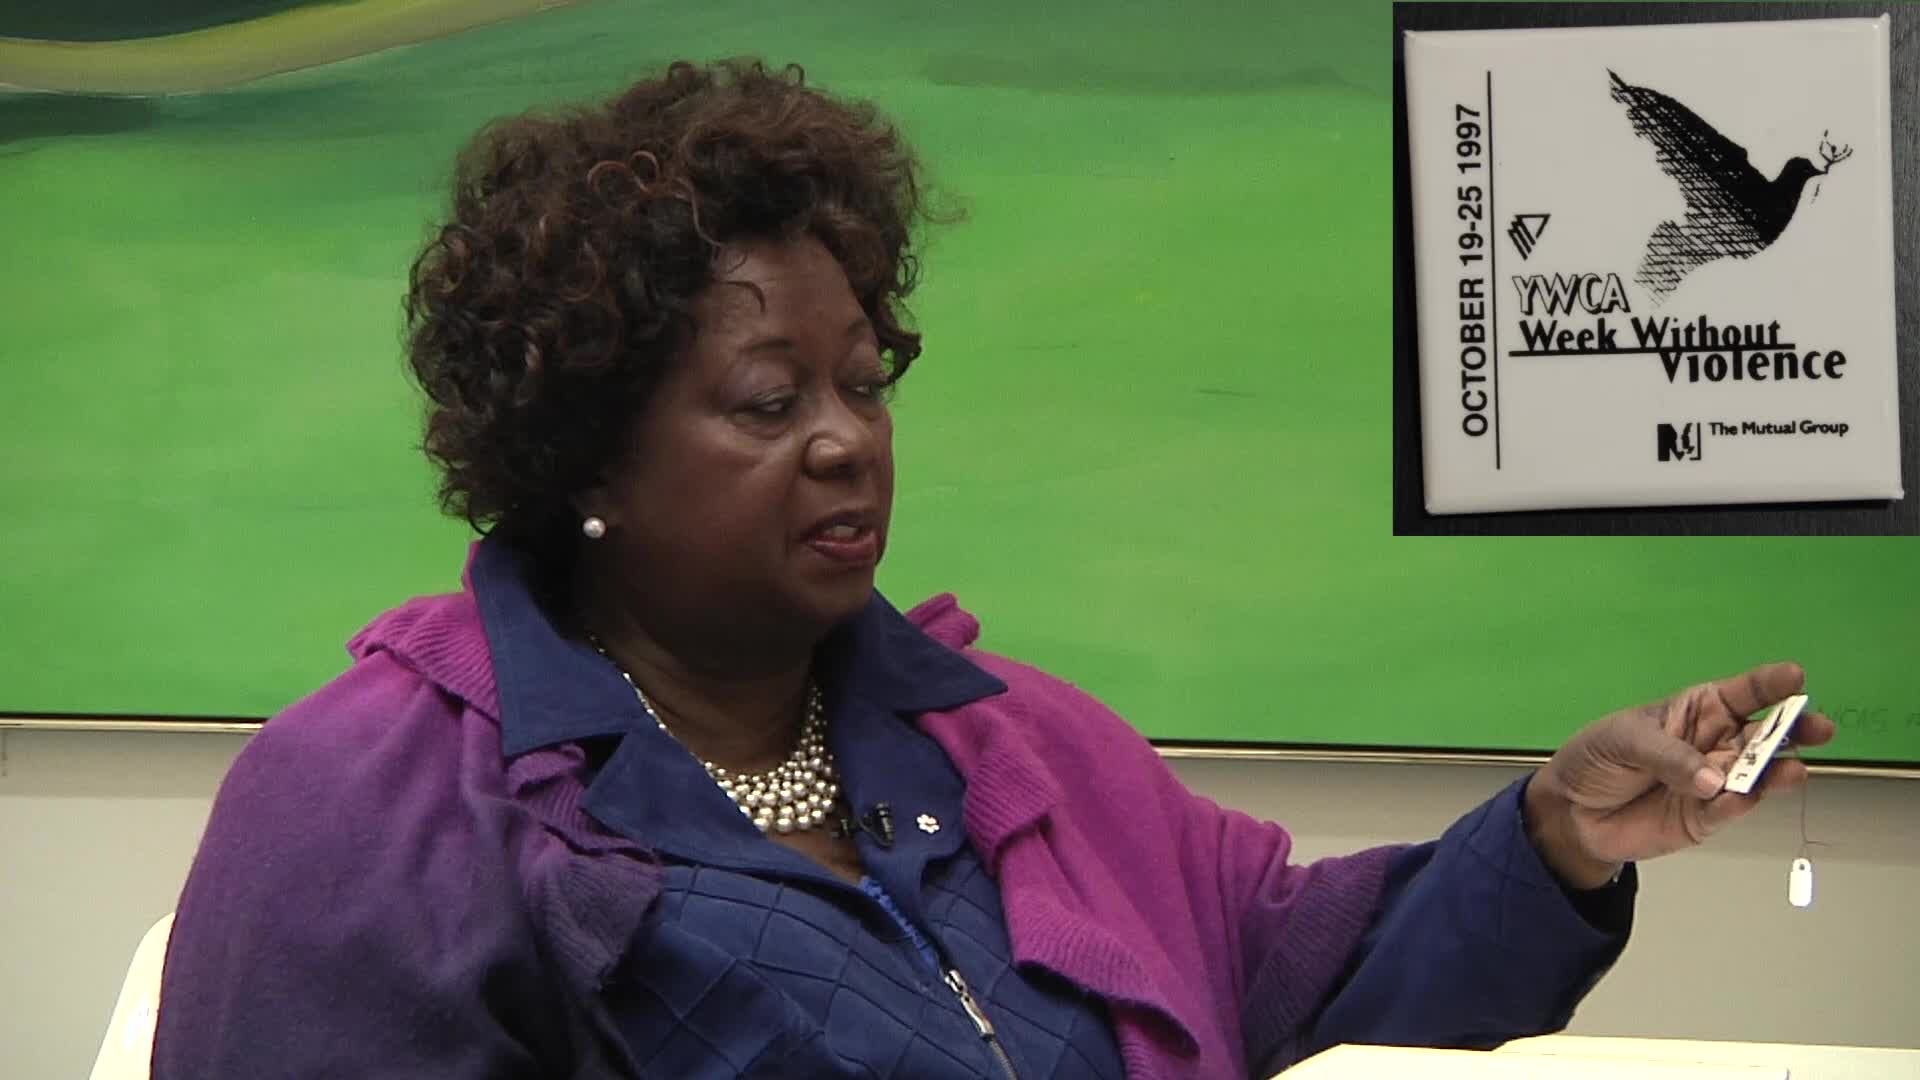 Jean Augustine interview: YWCA week without violence